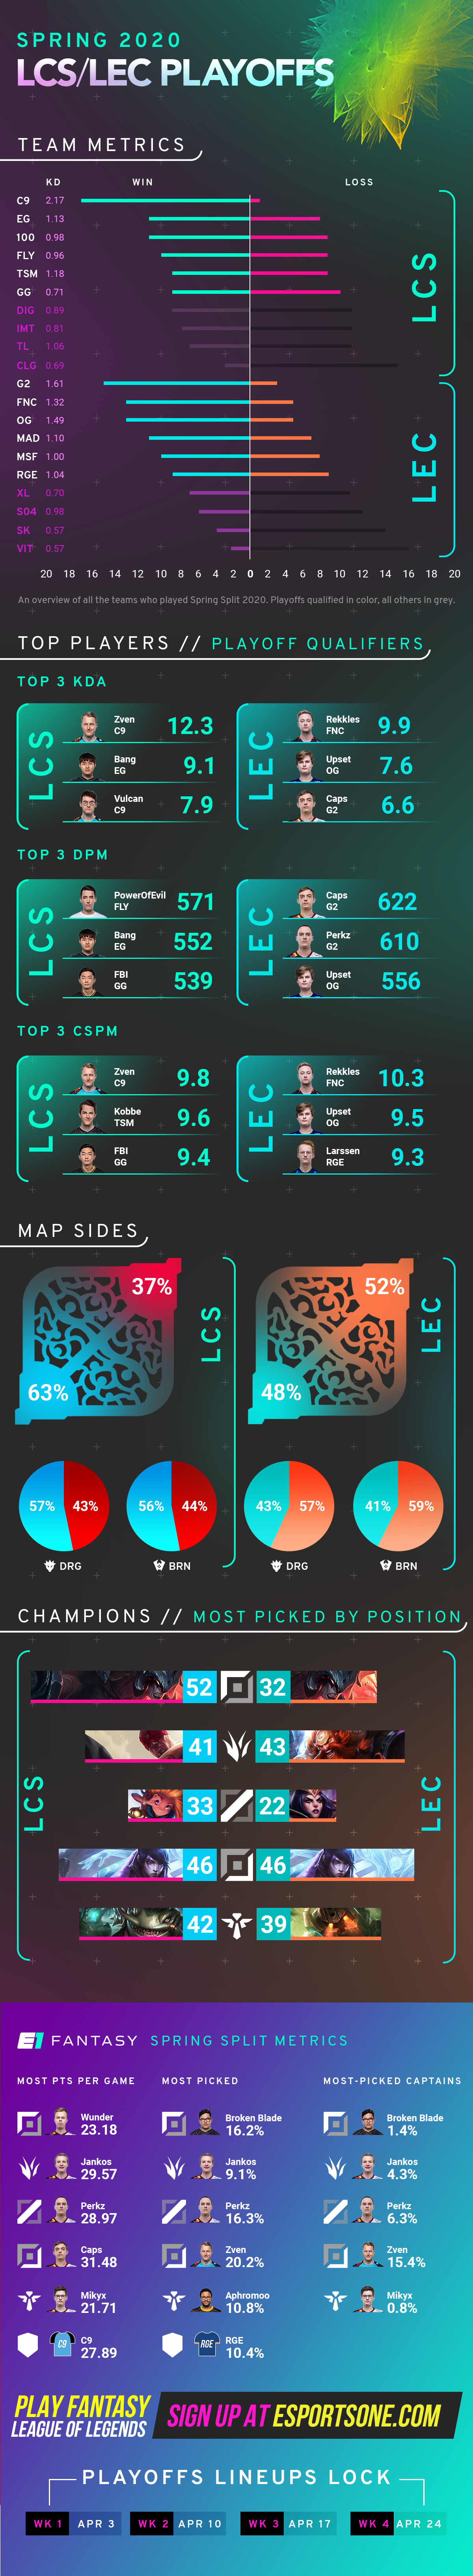 LEC and LCS Playoffs infographic